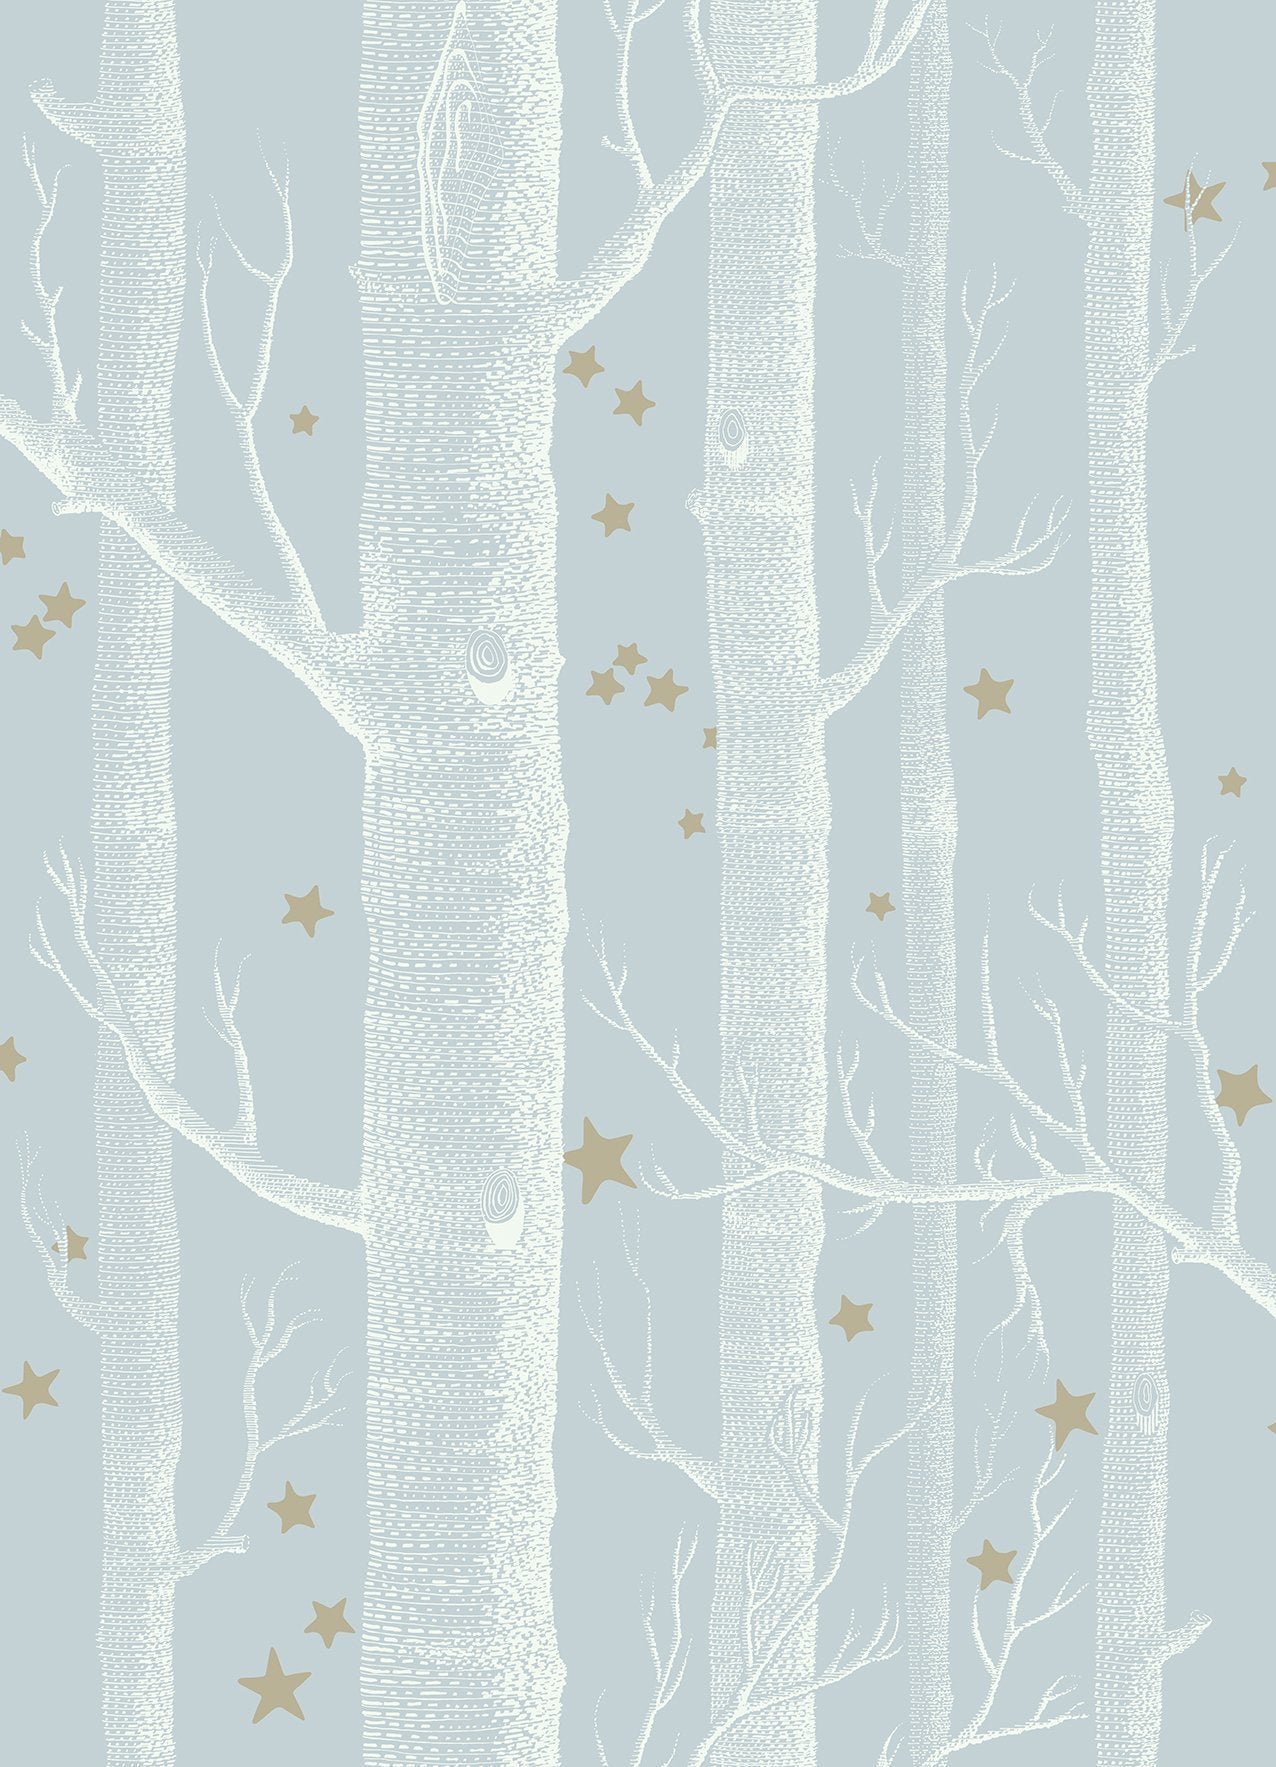 Cole And Son Woods woods & stars 103/11051 wallpapercole & son